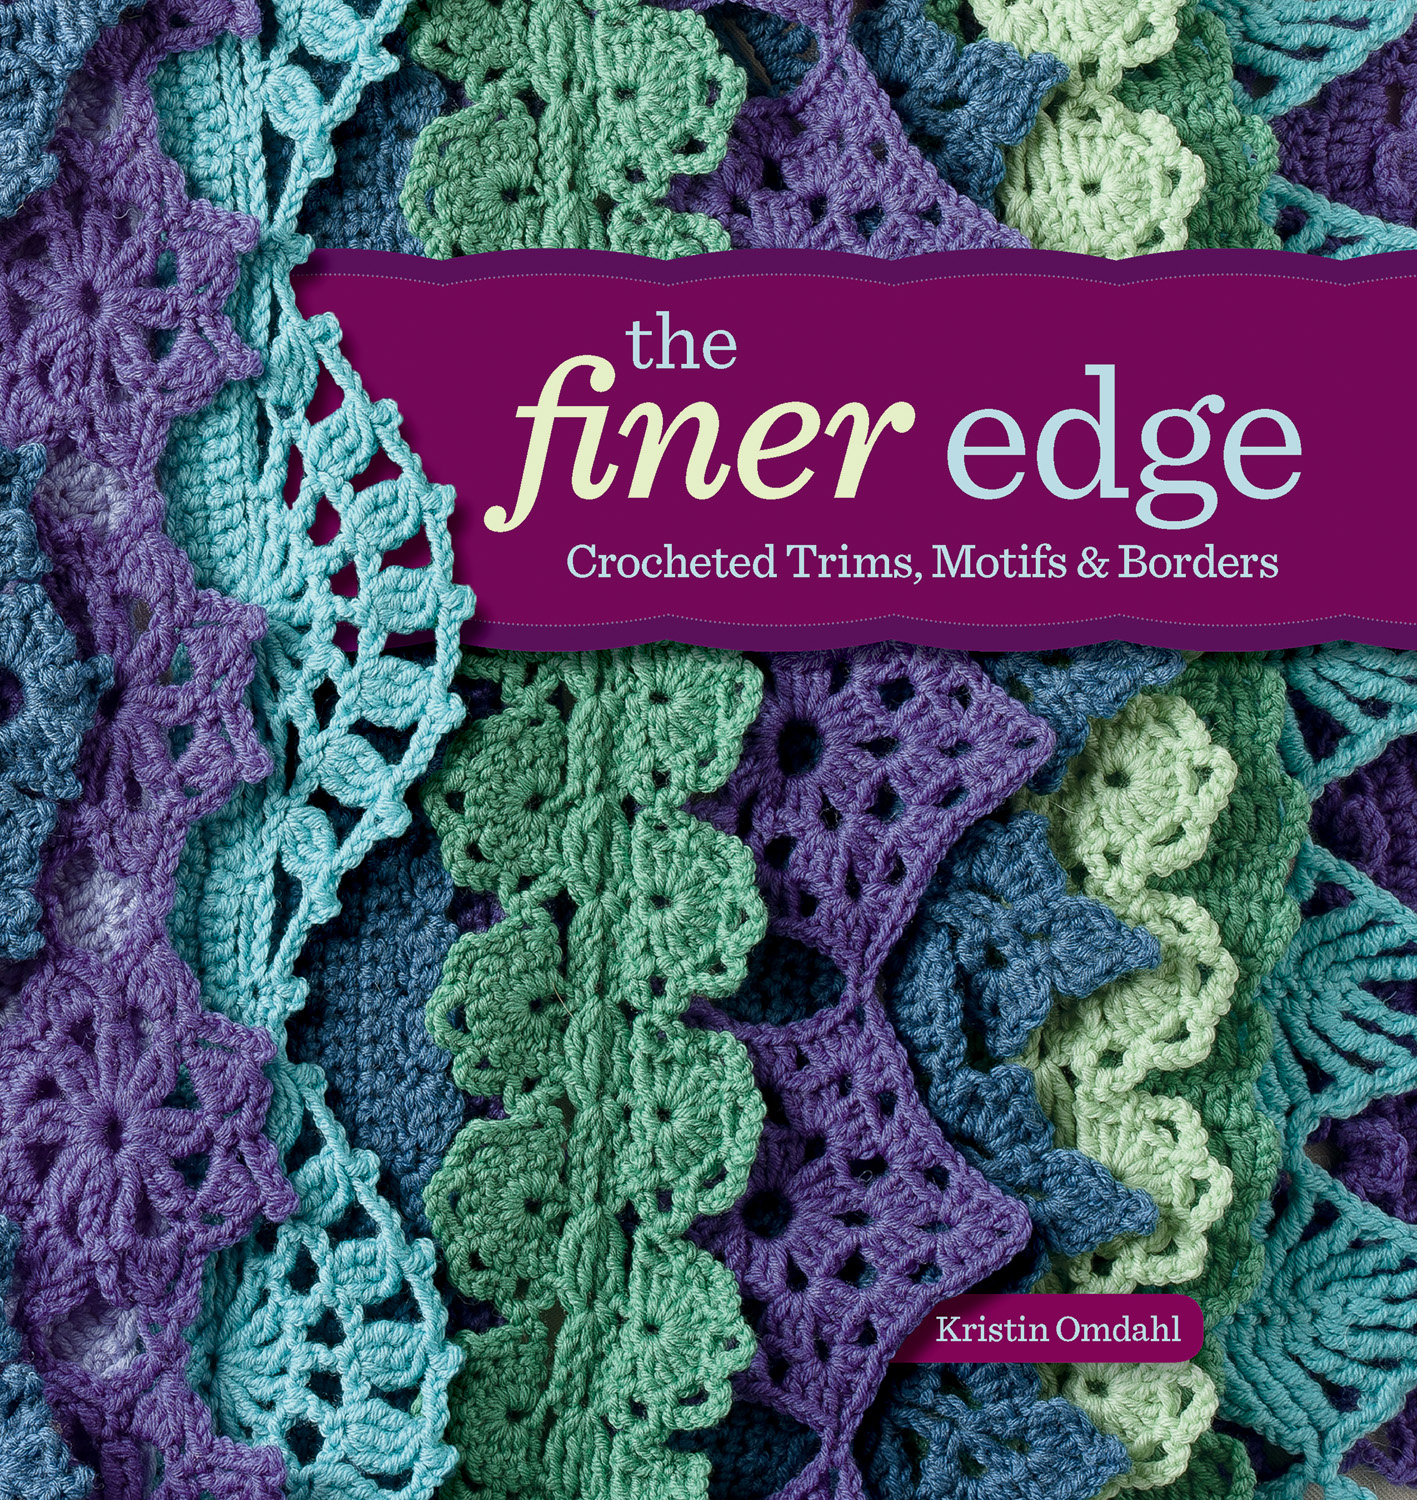 Cover art of The Finer Edge: Crocheted Trims, Motifs, & Borders by Kristin Omdahl, a book of crochet edgings.